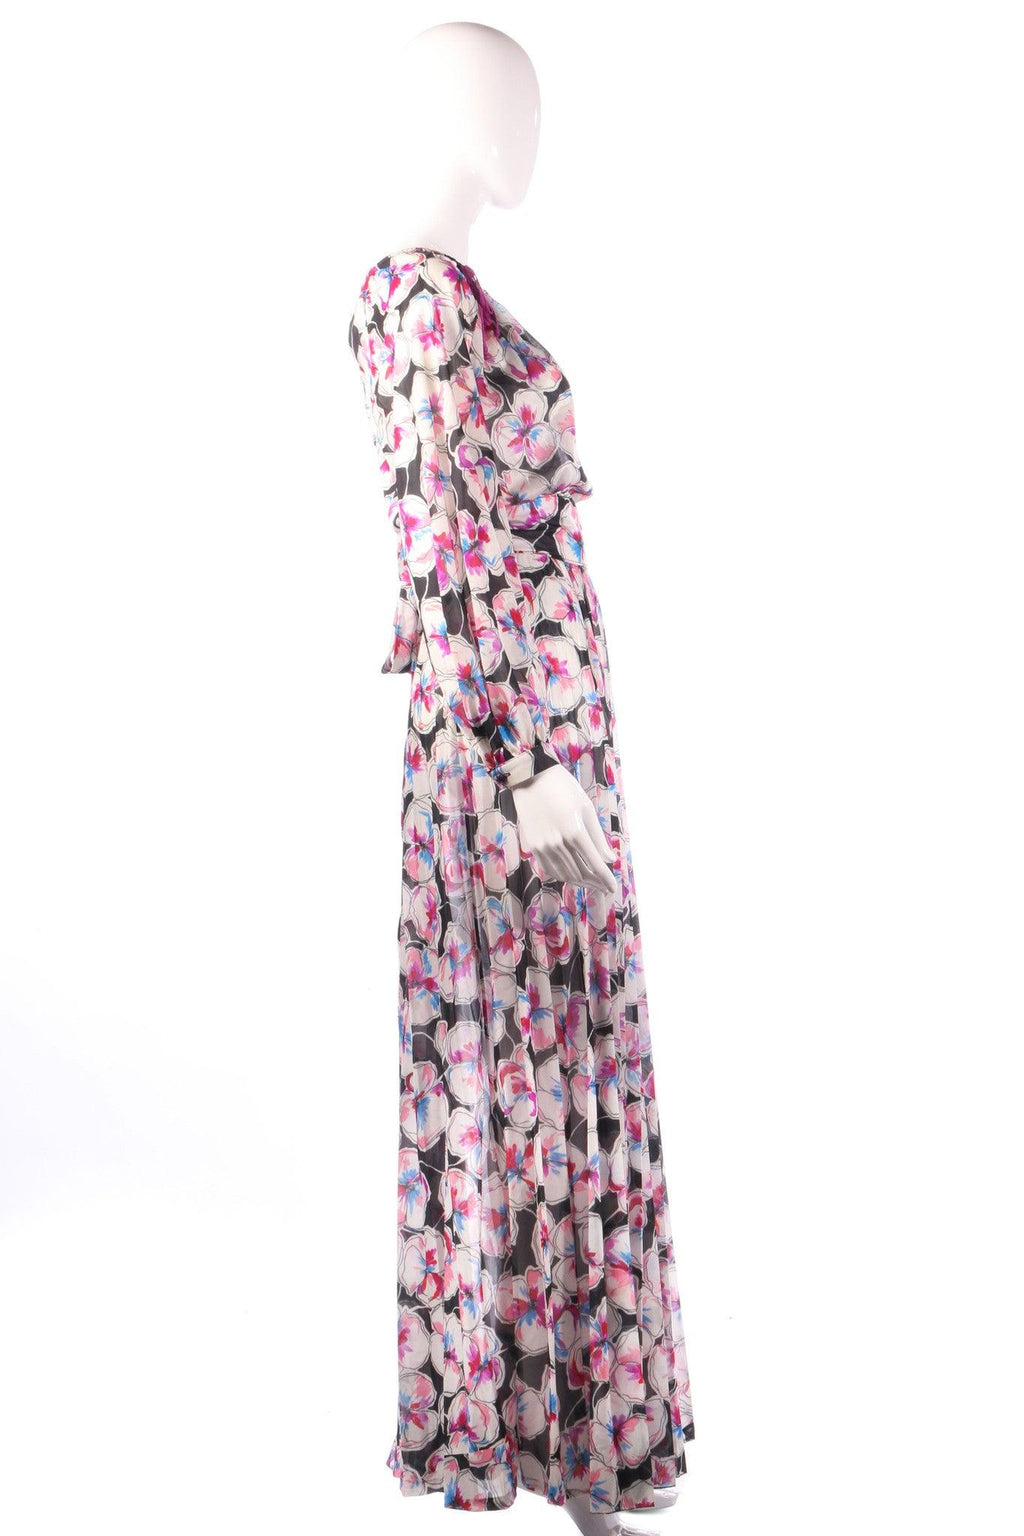 Tricosa black and pink floral maxi dress side